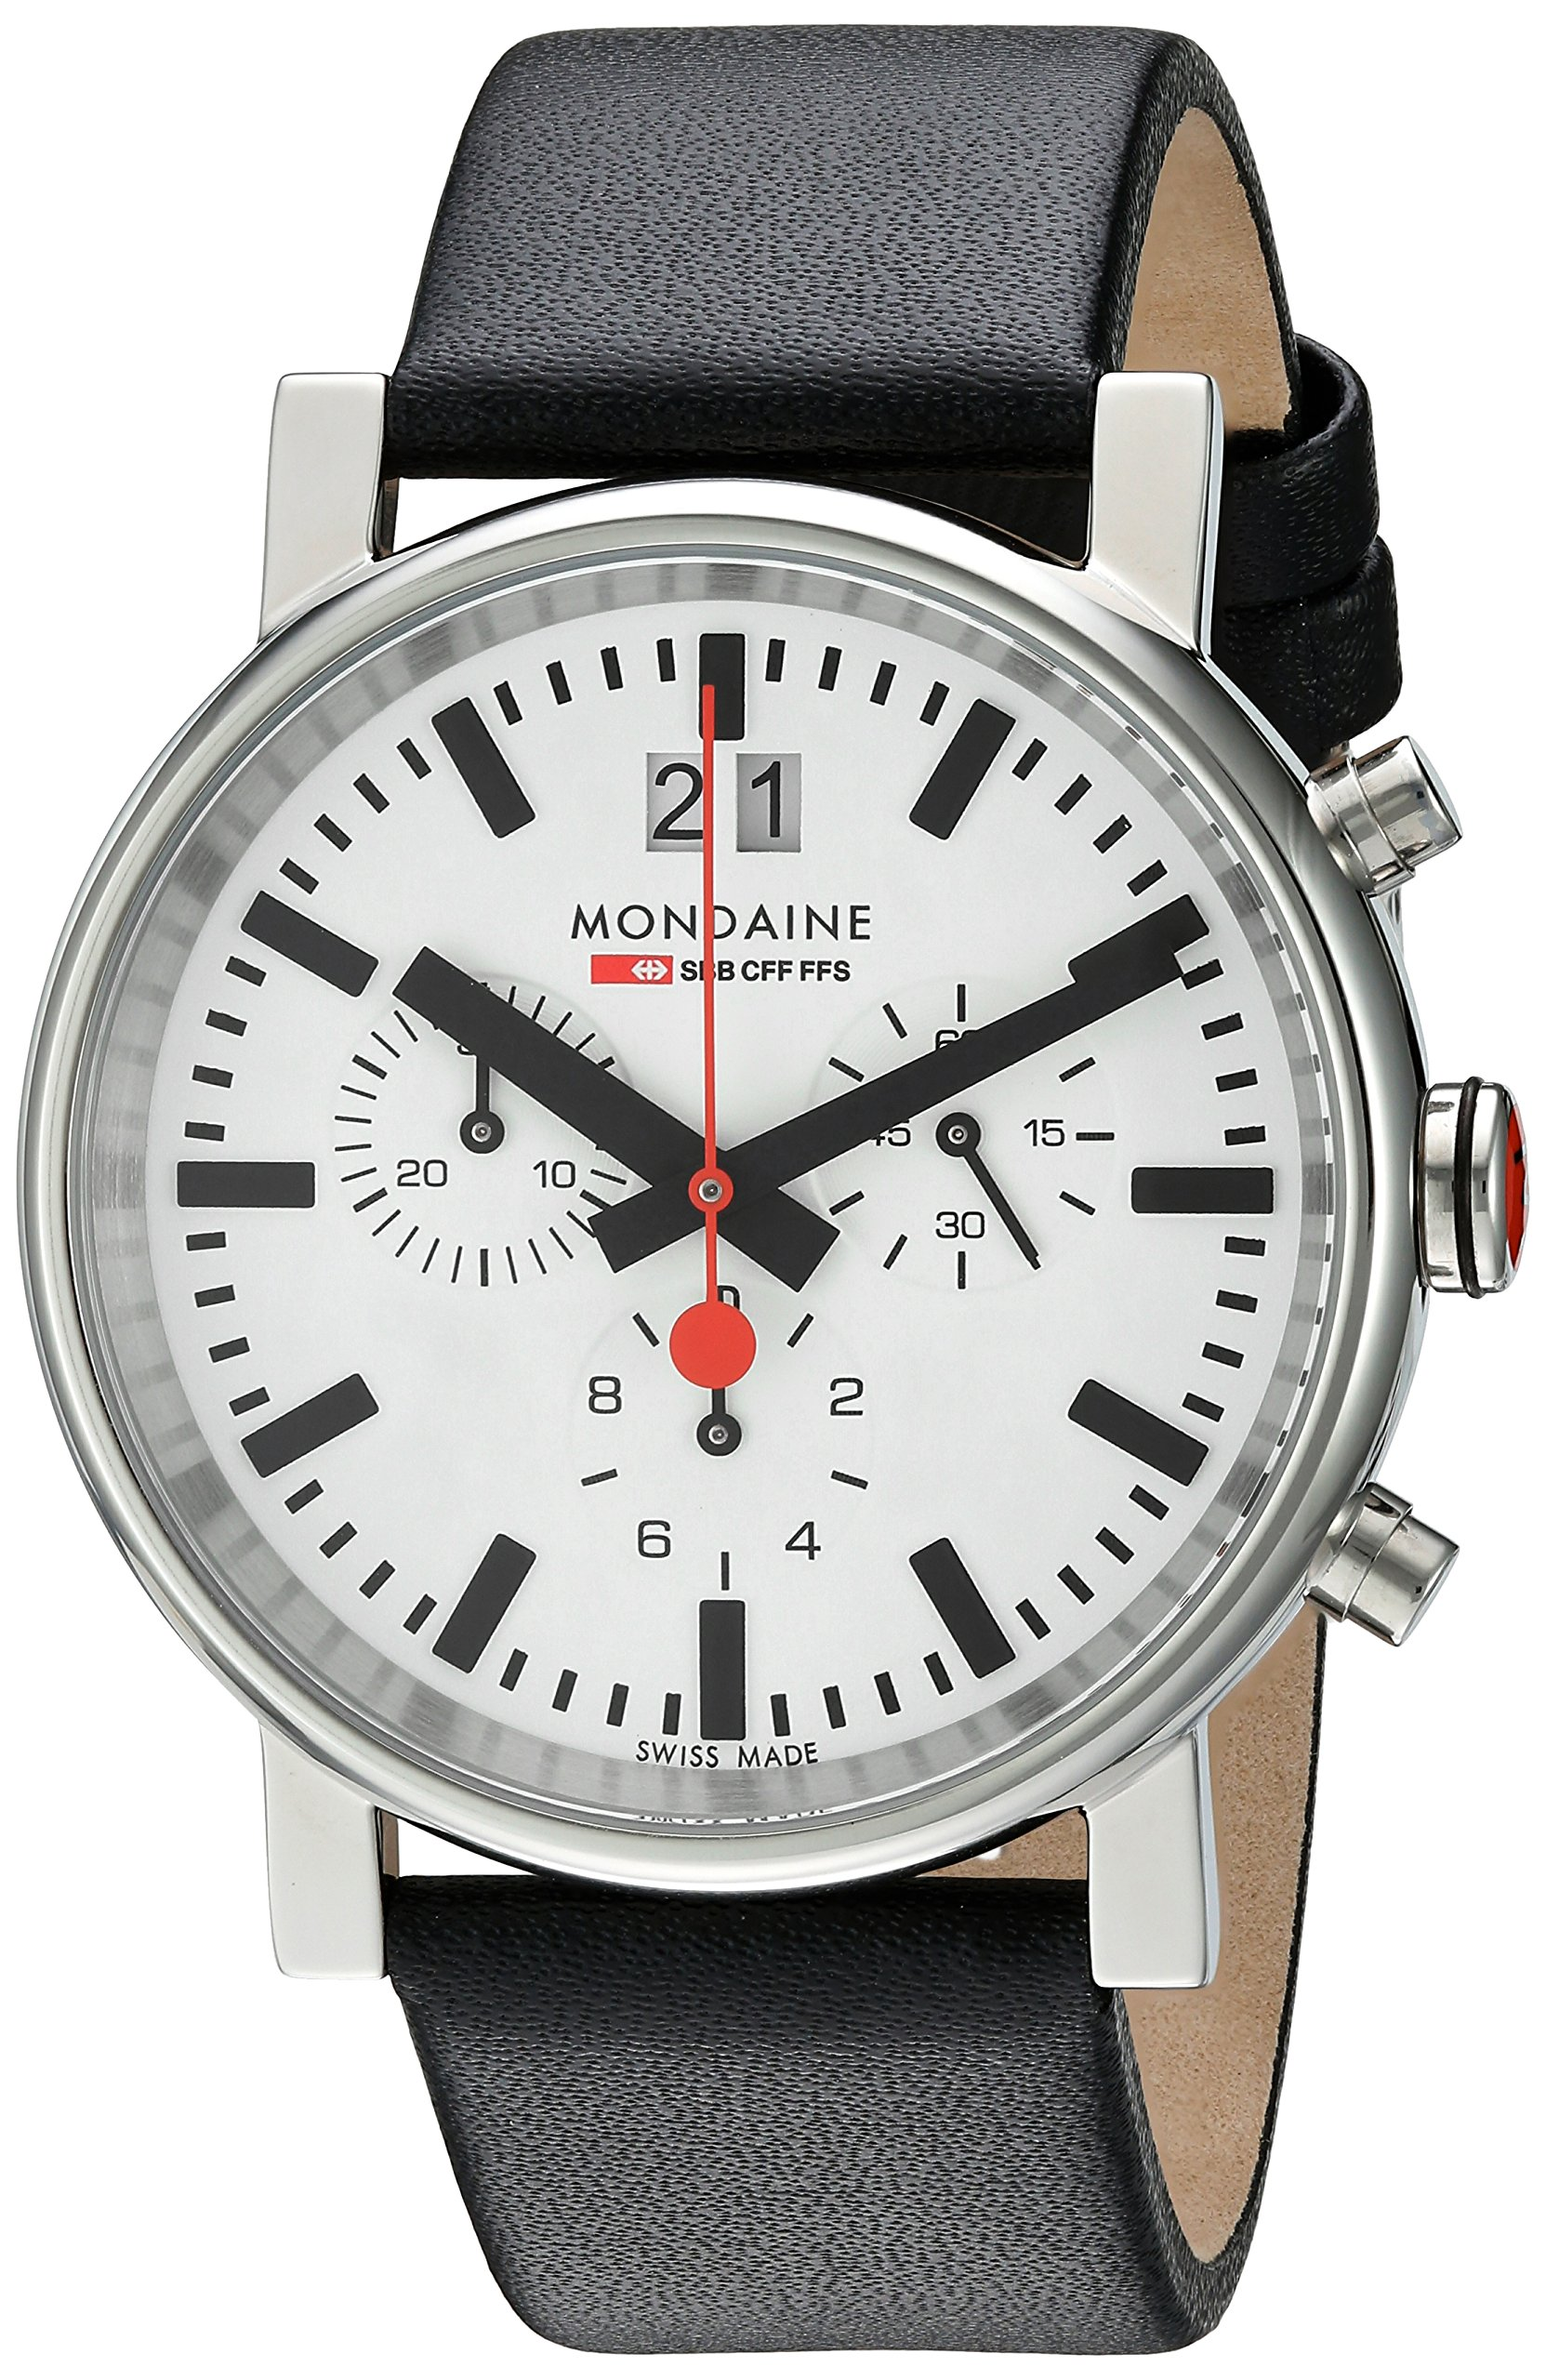 Mondaine Unisex A690.30304.11SBB Quartz Analog Chronograph Watch by Mondaine